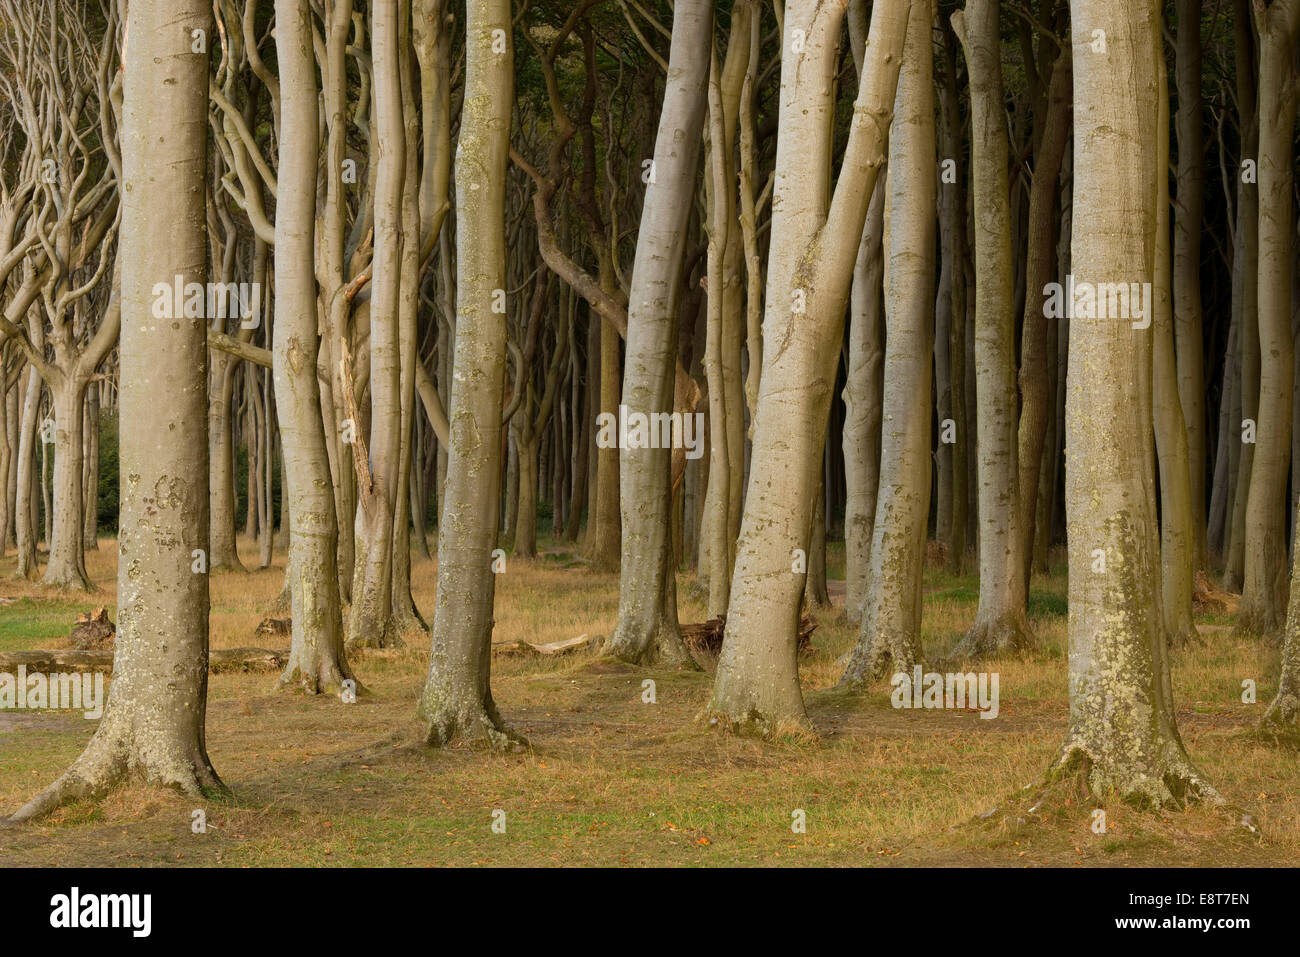 Ghost Forest, beech forest, European Beech or Common Beech trees (Fagus sylvatica), Nienhagen, Mecklenburg-Western - Stock Image